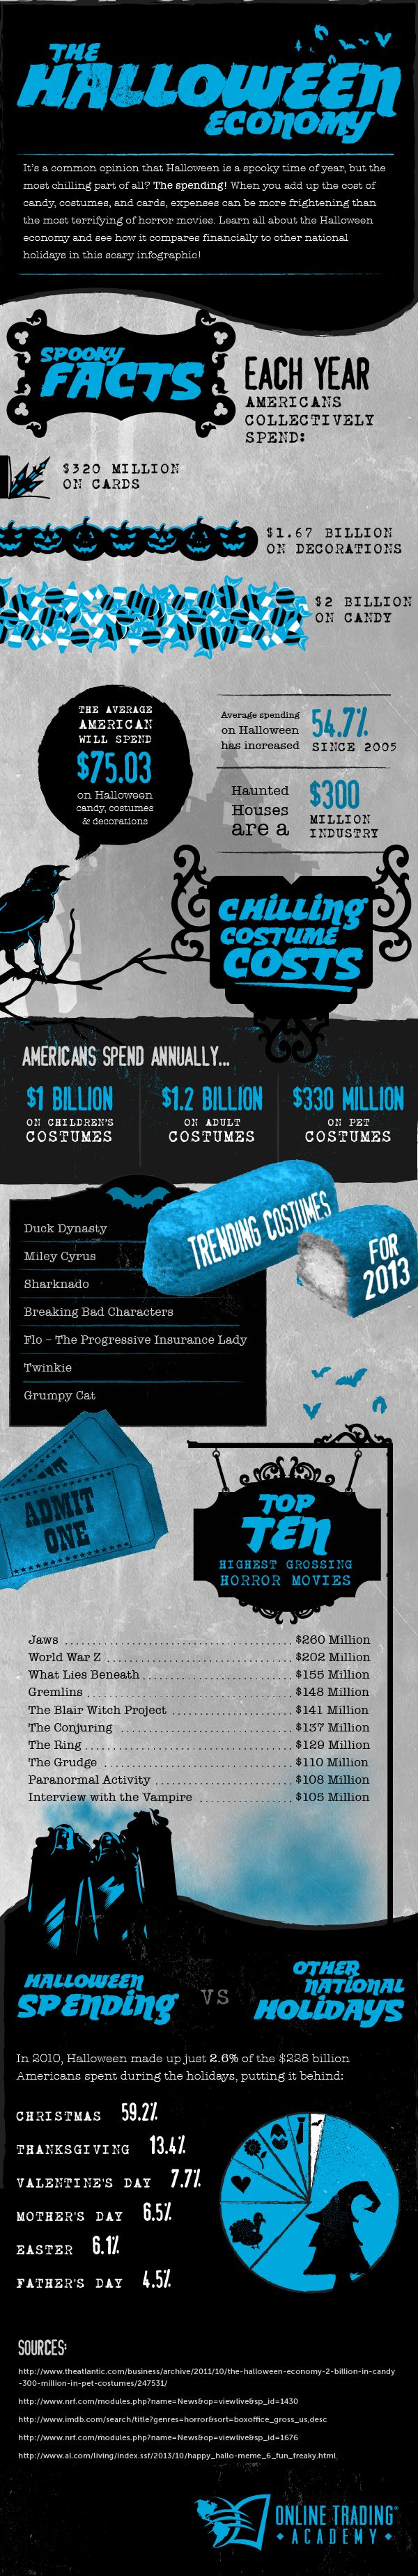 how much do americans spend on halloween discover infographics - Crazy Halloween Facts